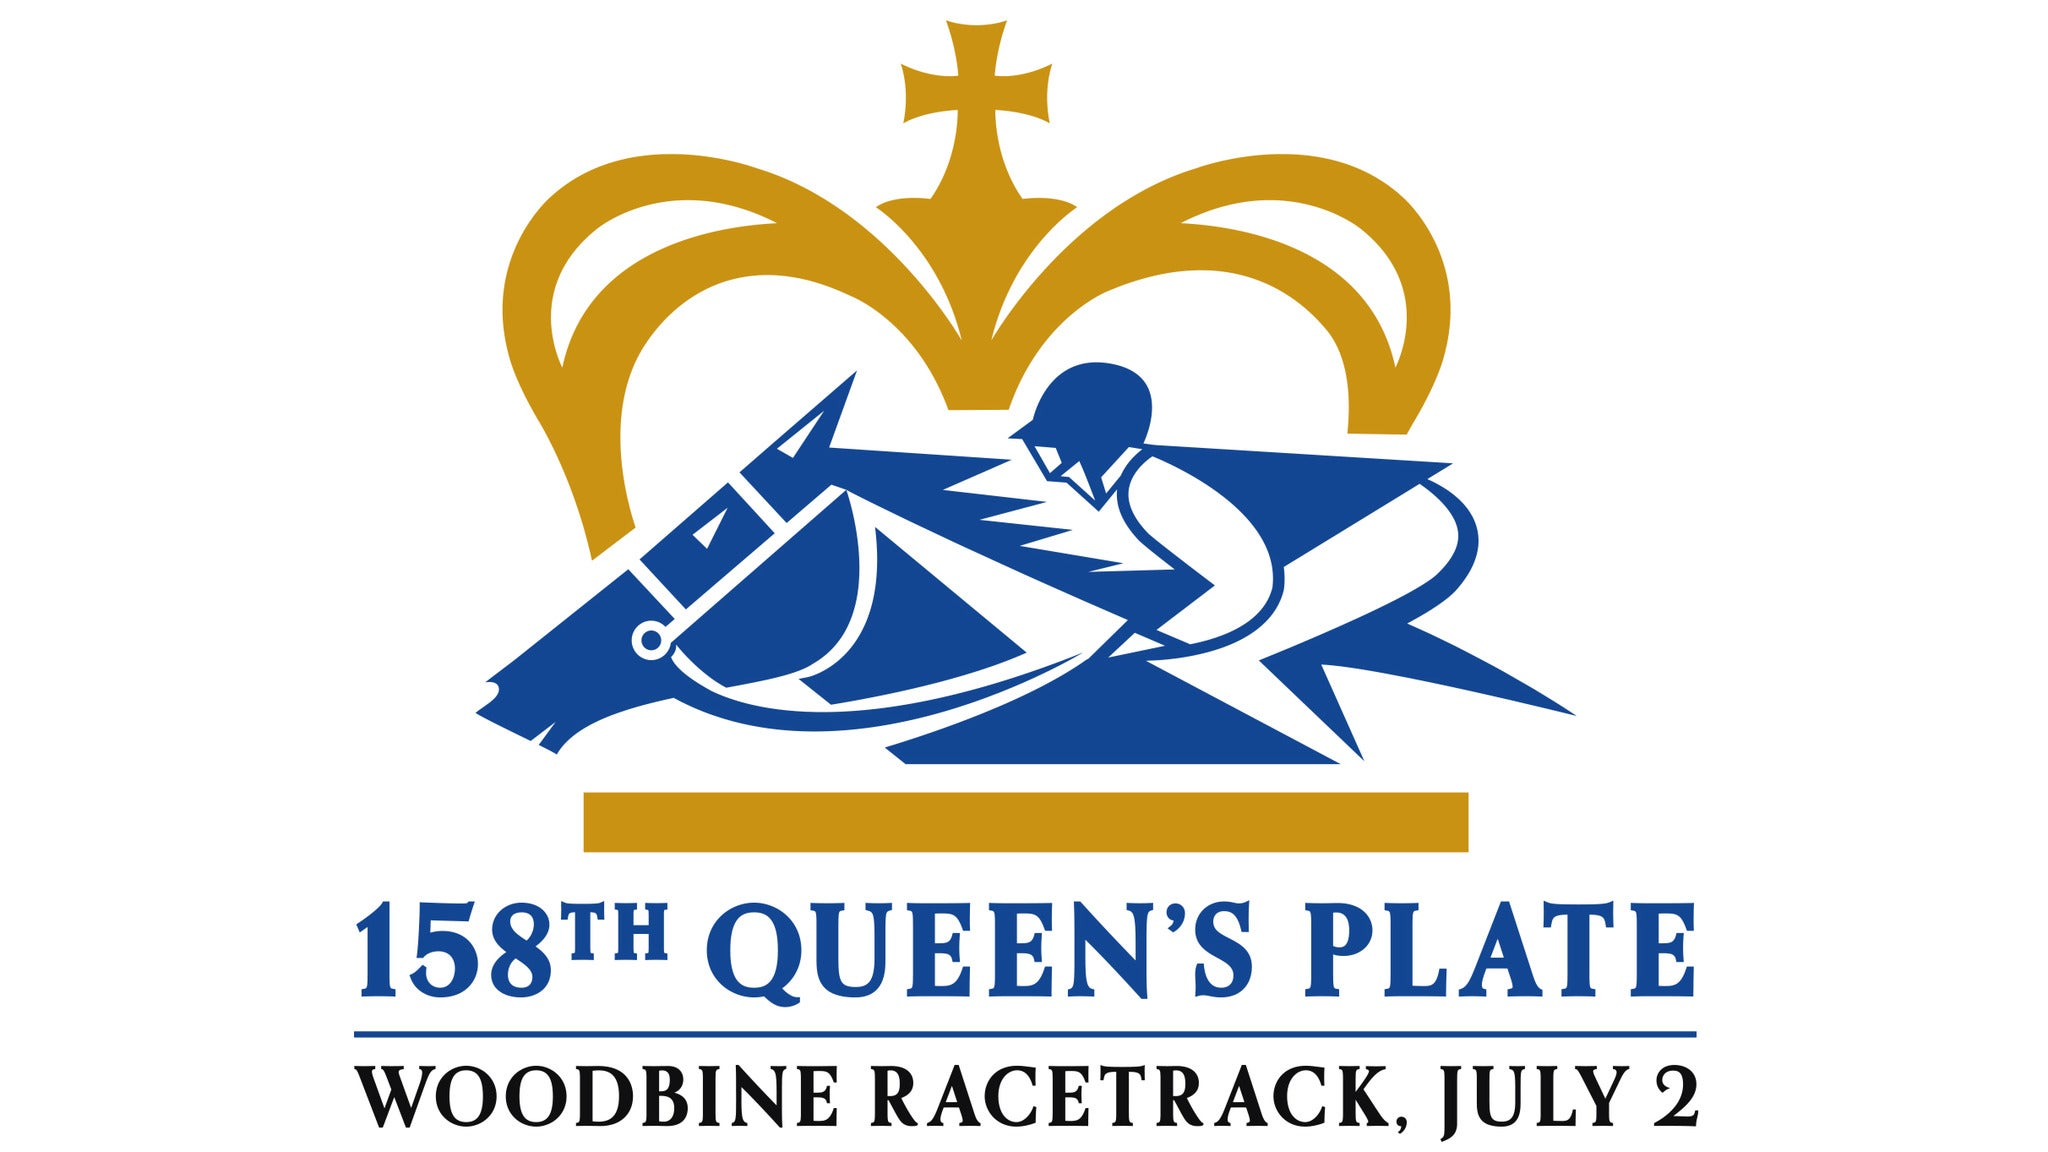 158th Queen's Plate at Woodbine Racetrack